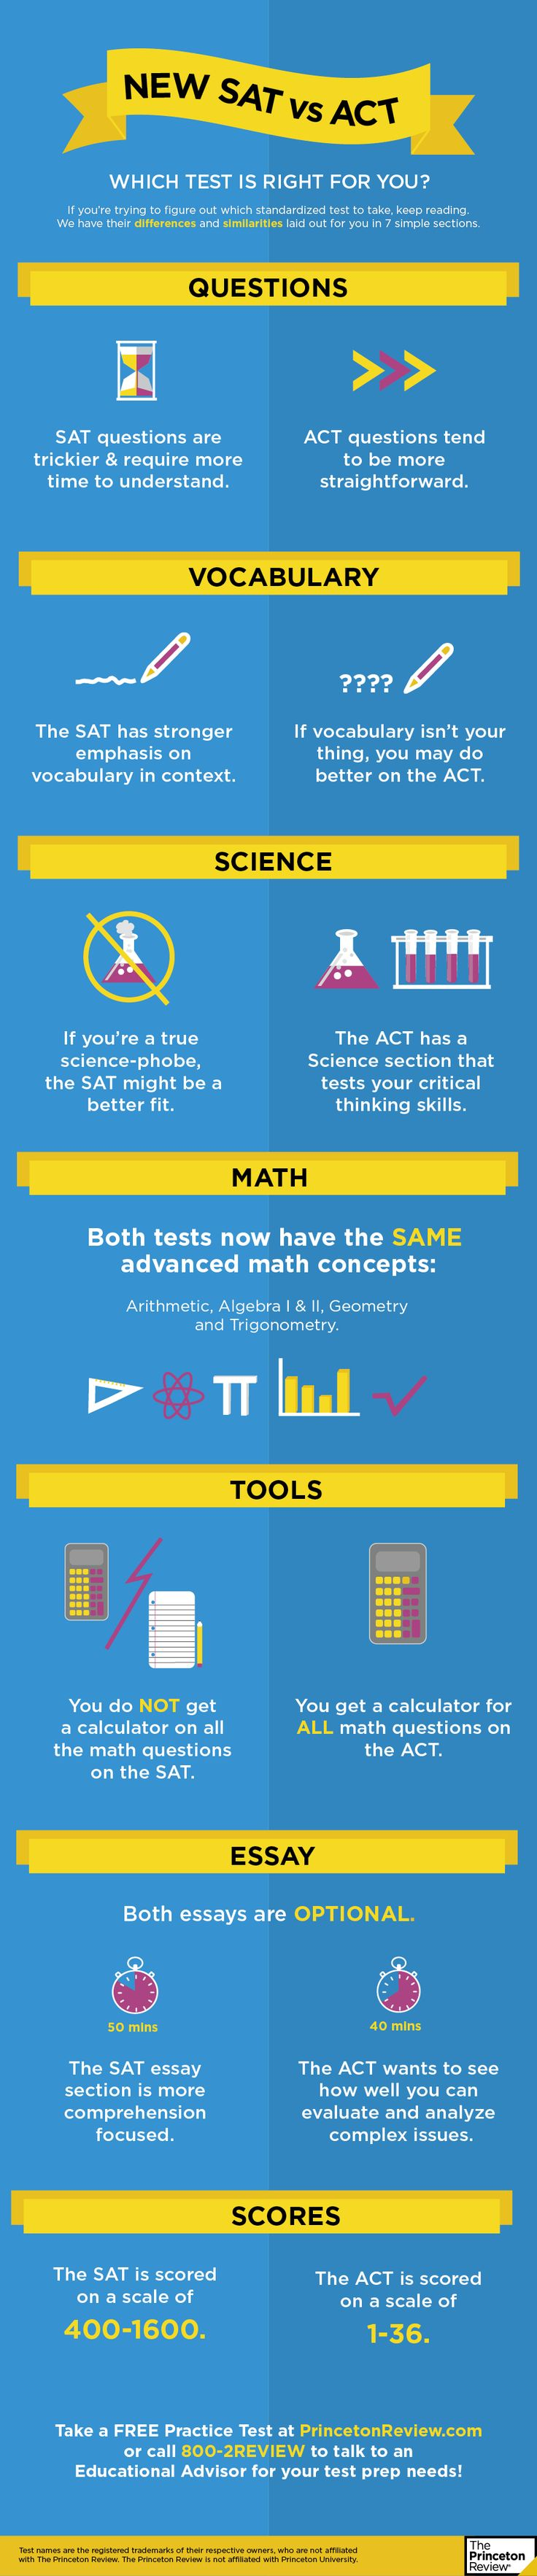 best high school vs college ideas new sat vs act infog